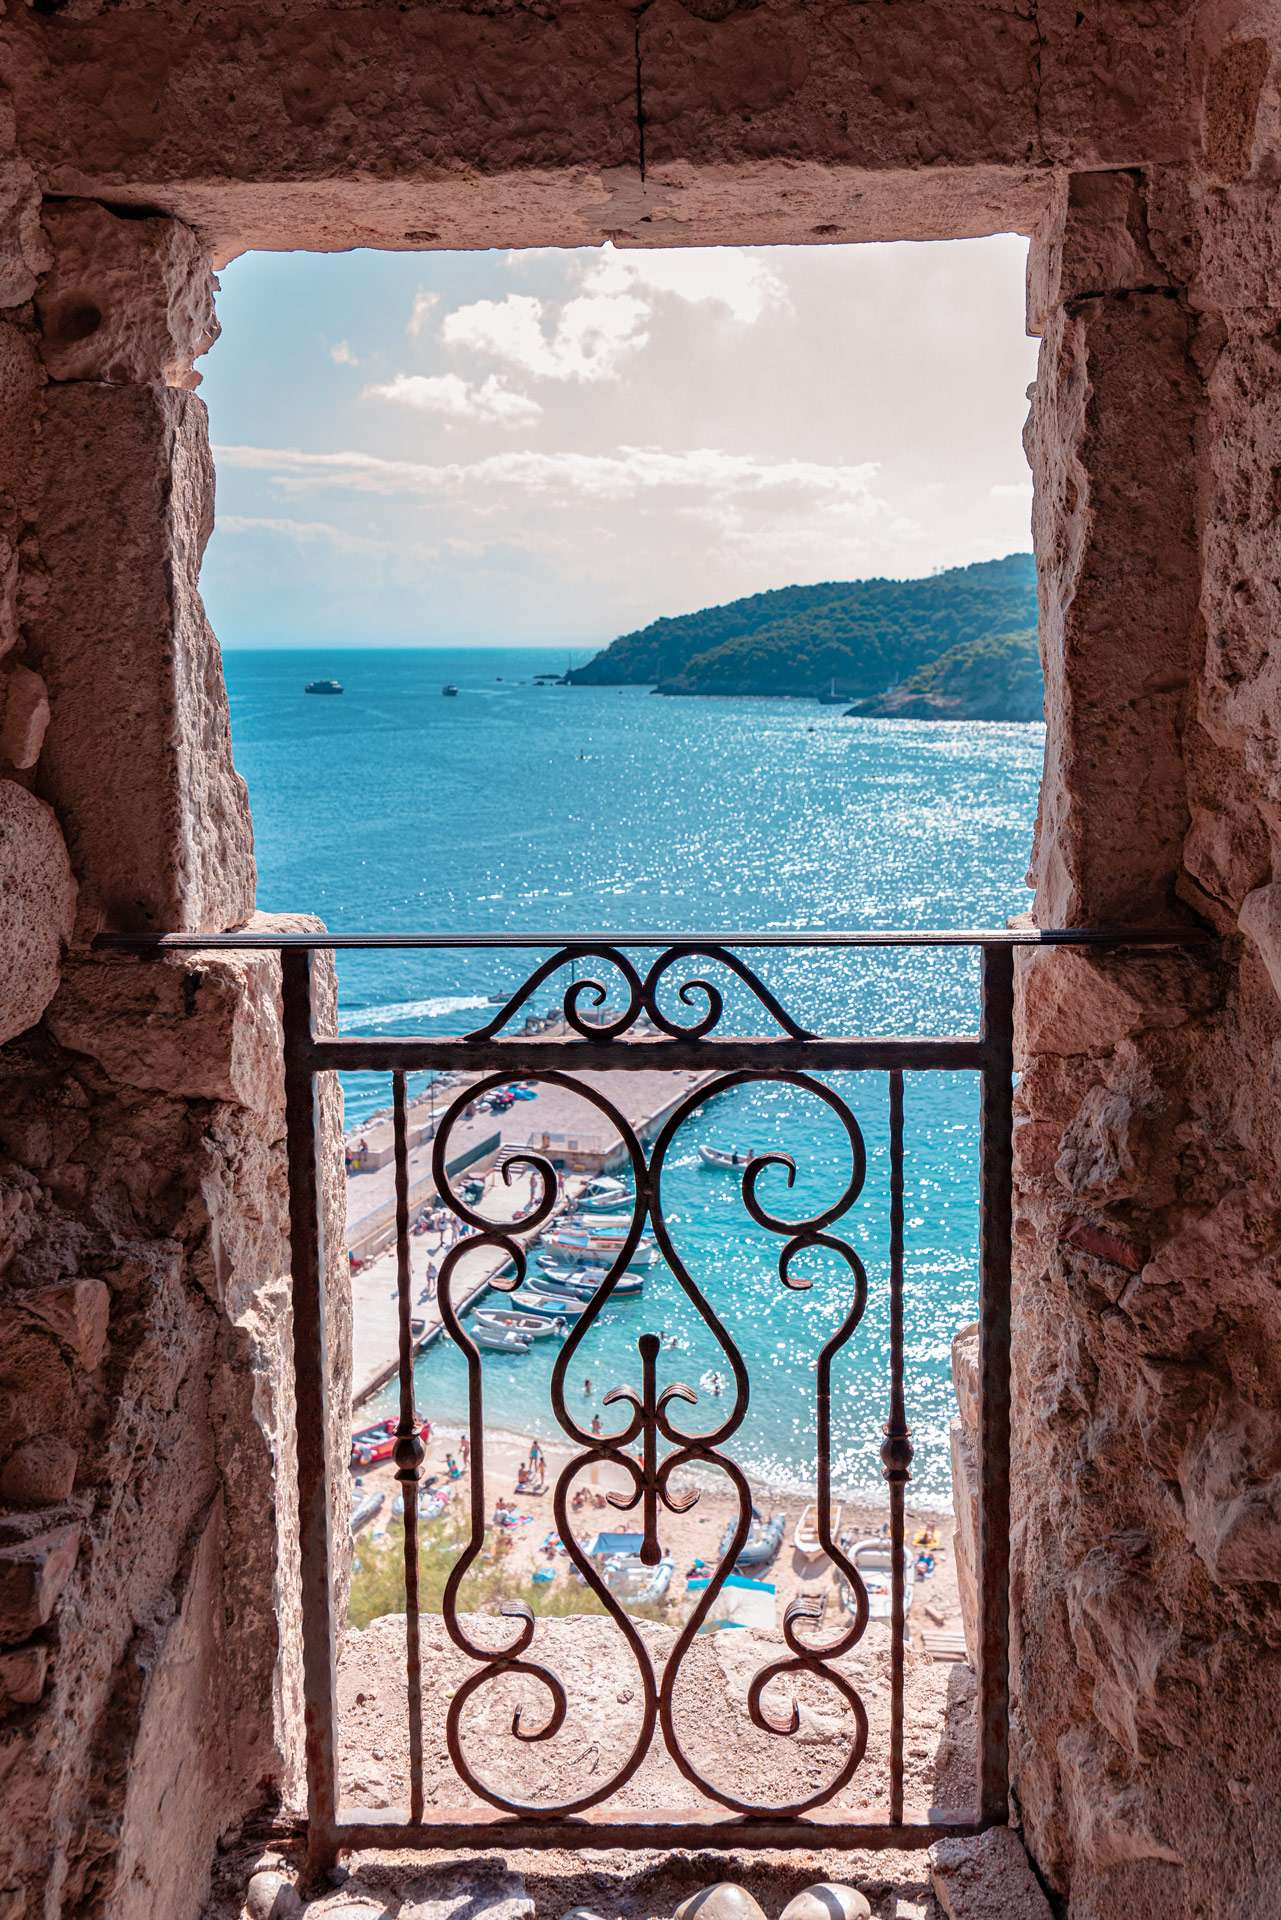 A window on the wall of the San Nicola Island | Tremiti Islands | Puglia